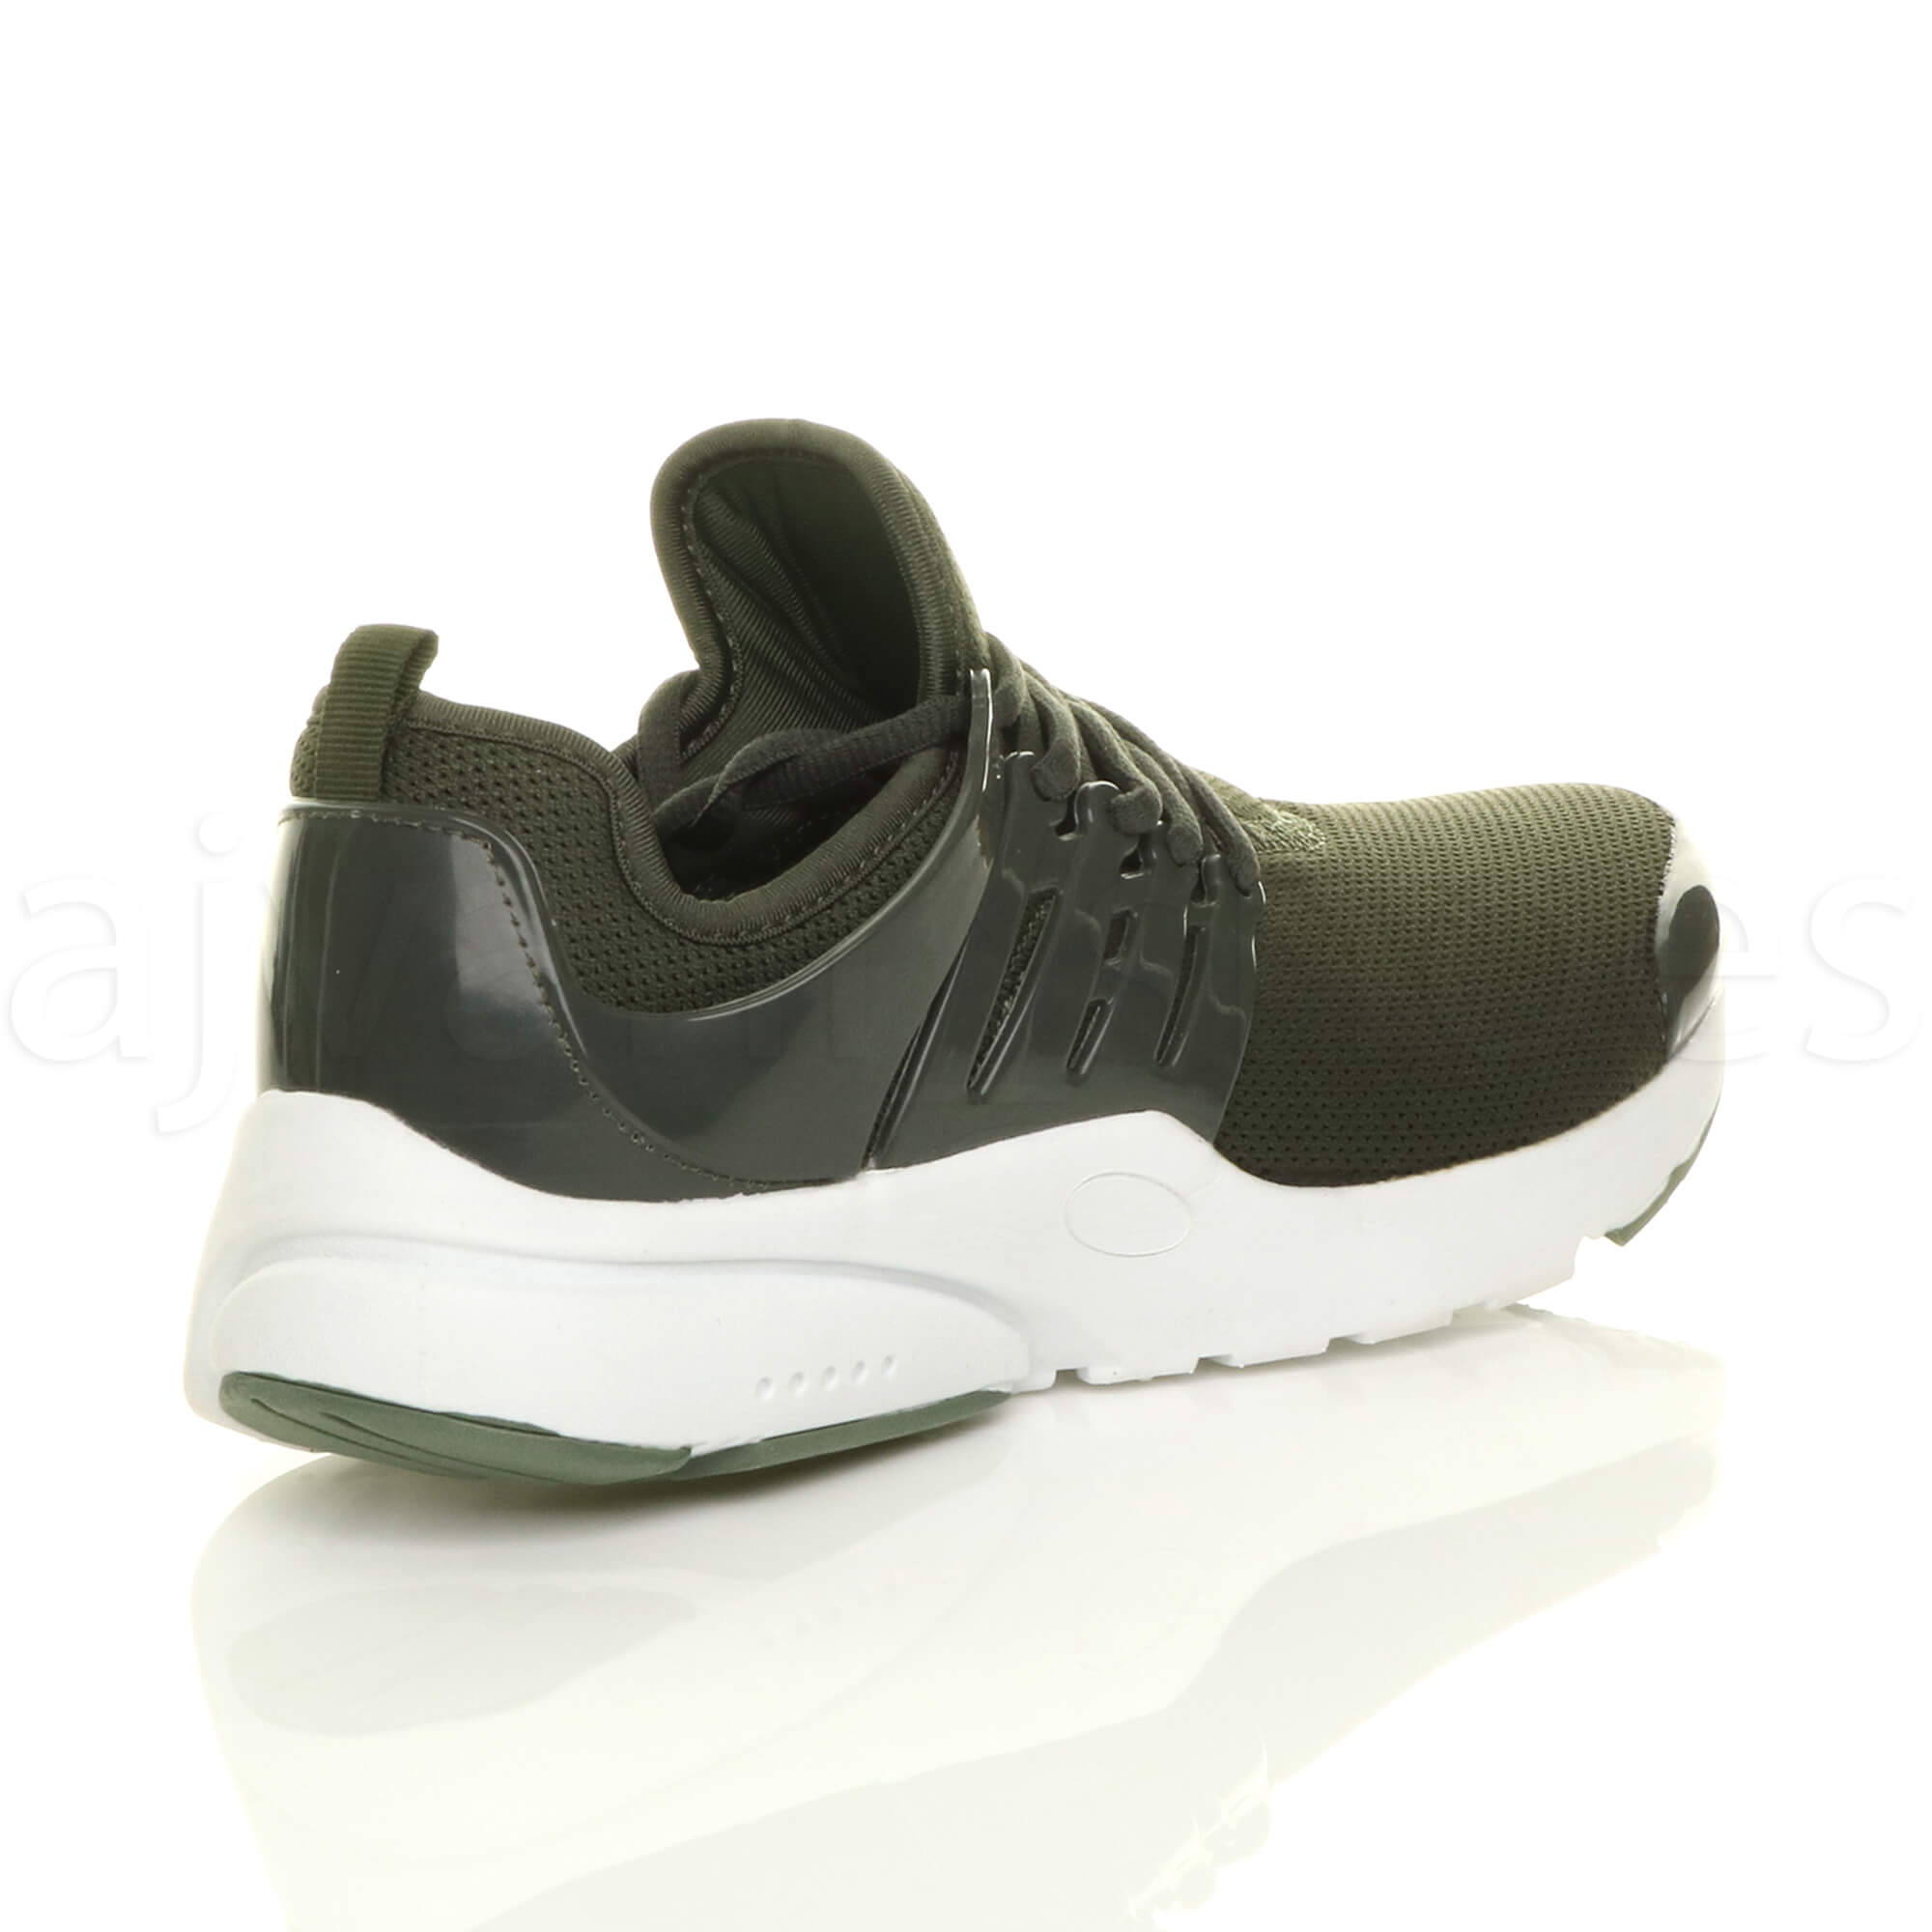 MENS-LACE-UP-SPORTS-GYM-FITNESS-RUNNING-FLEXIBLE-TRAINERS-CASUAL-SNEAKERS-SIZE thumbnail 29